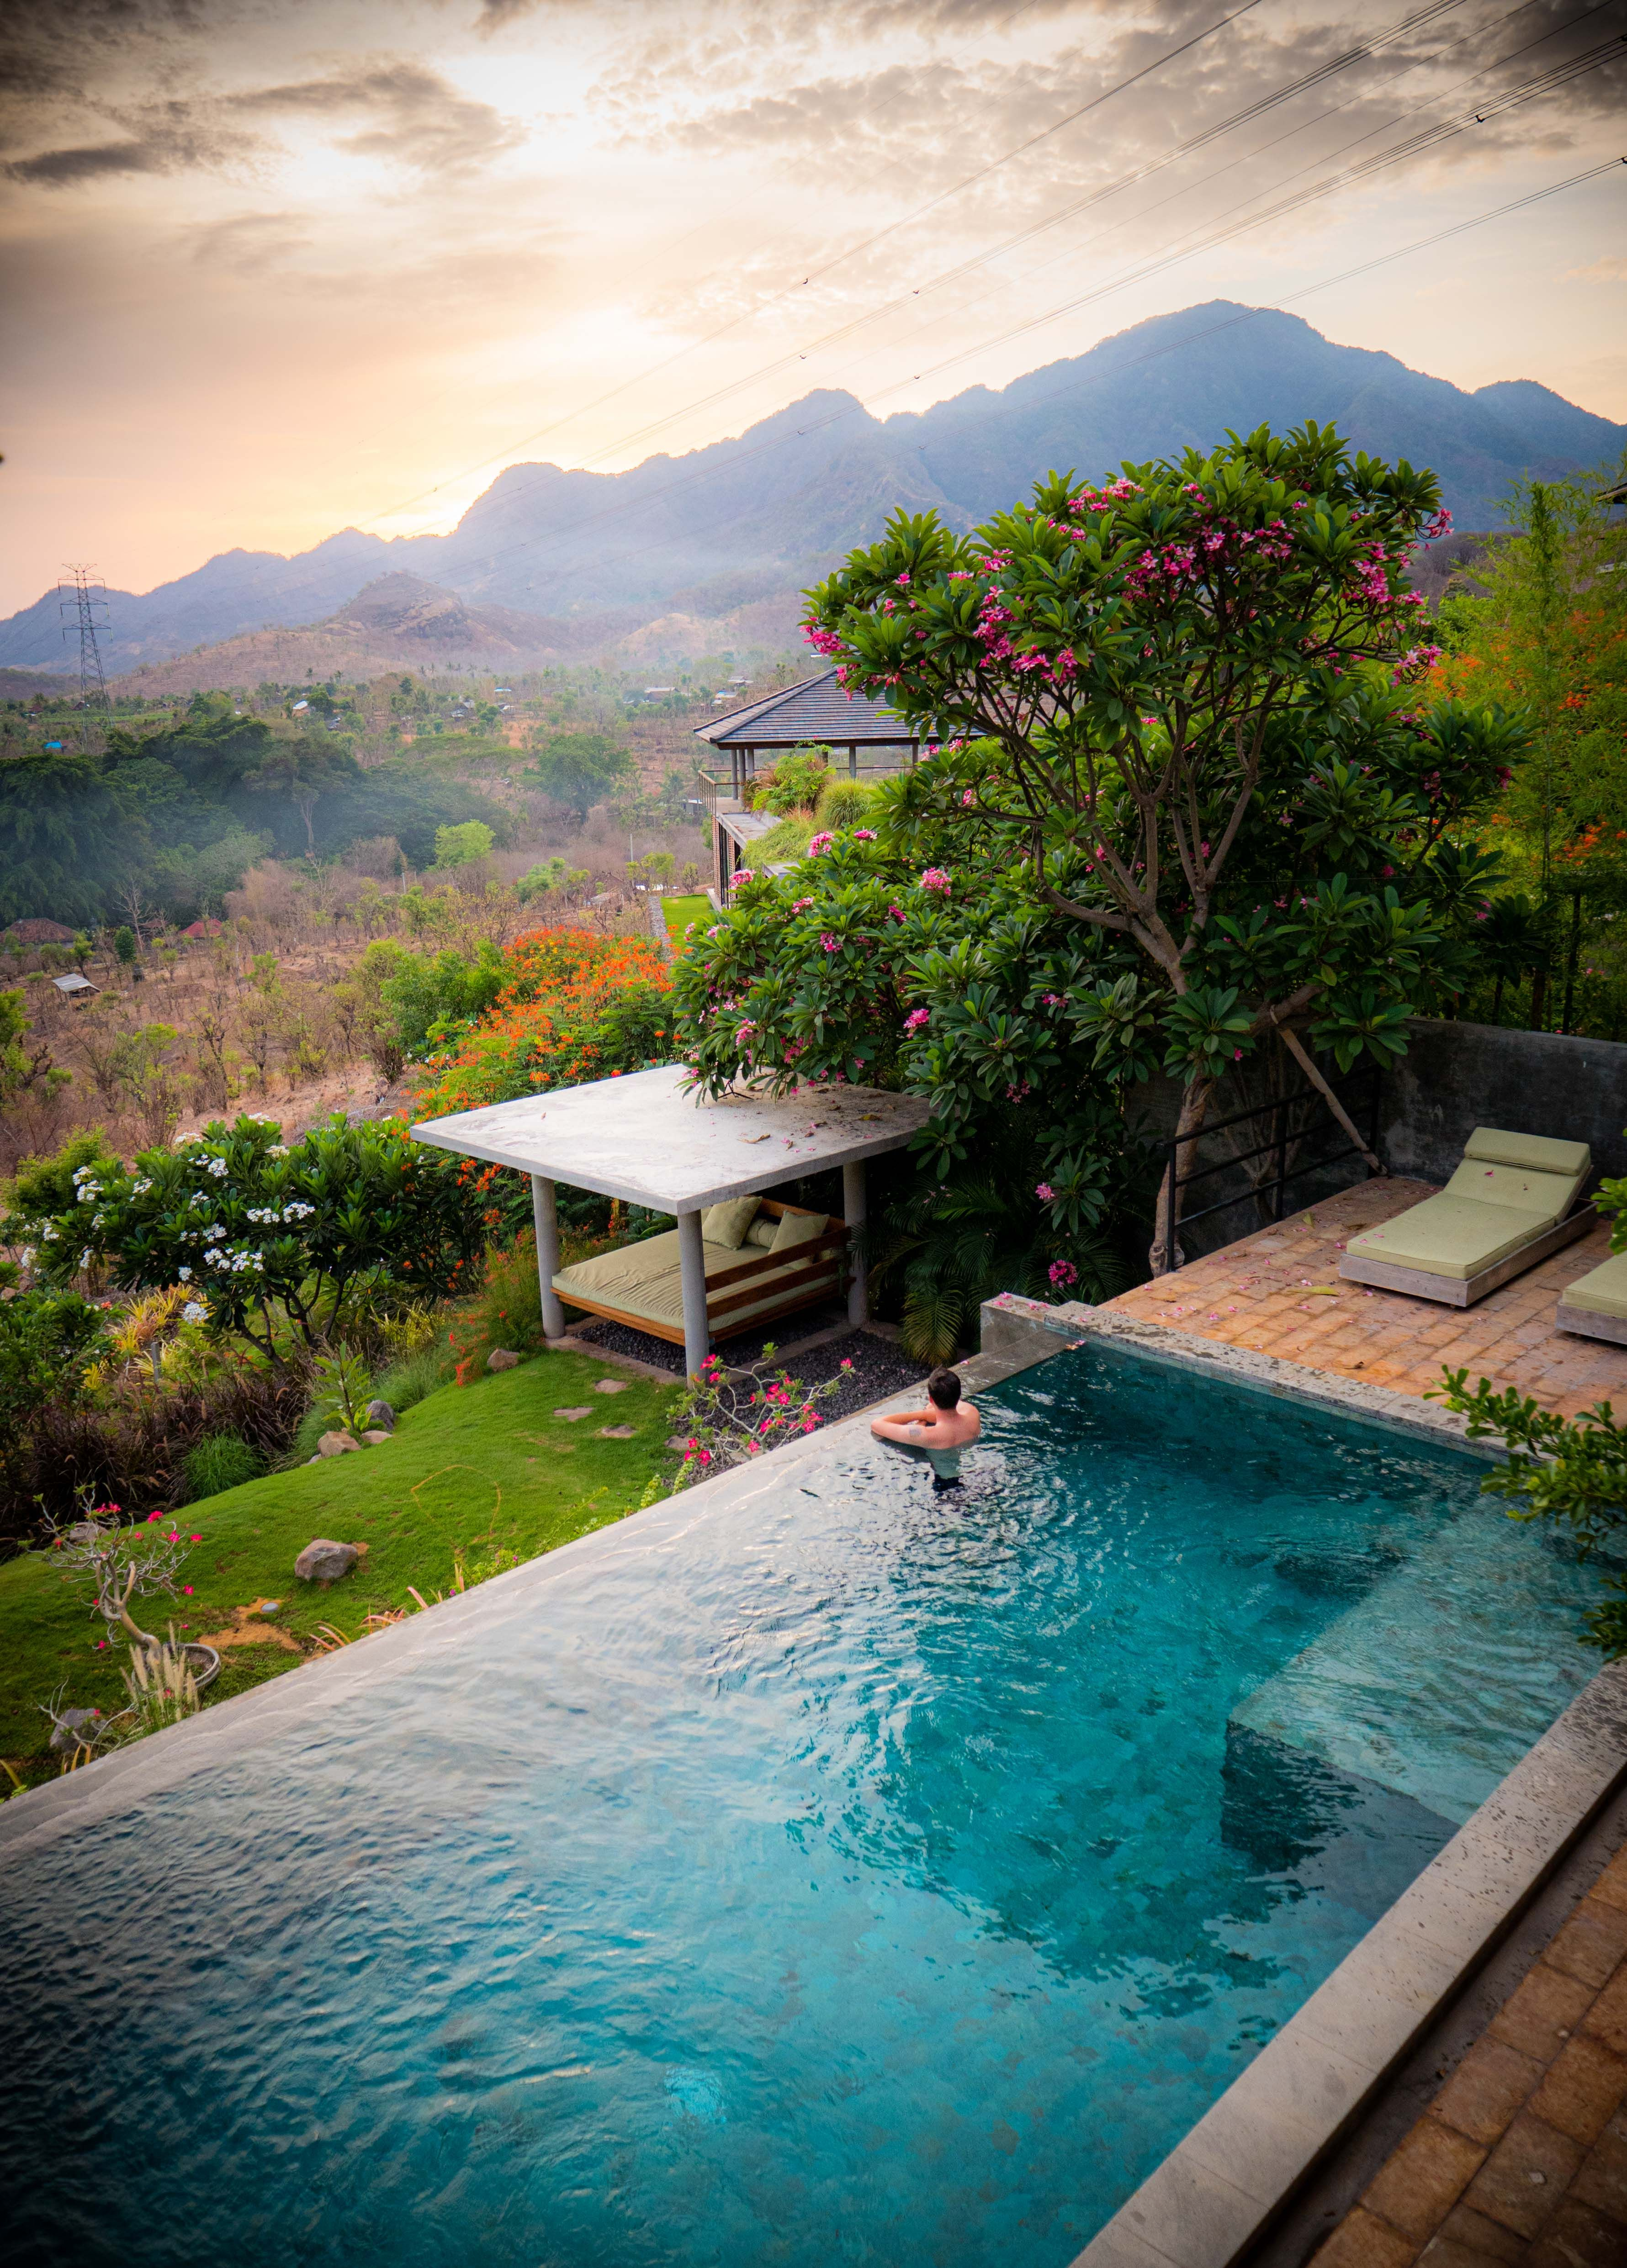 Bali Villa Swimming Pool House Infinity Pool Backyard Dream Pools